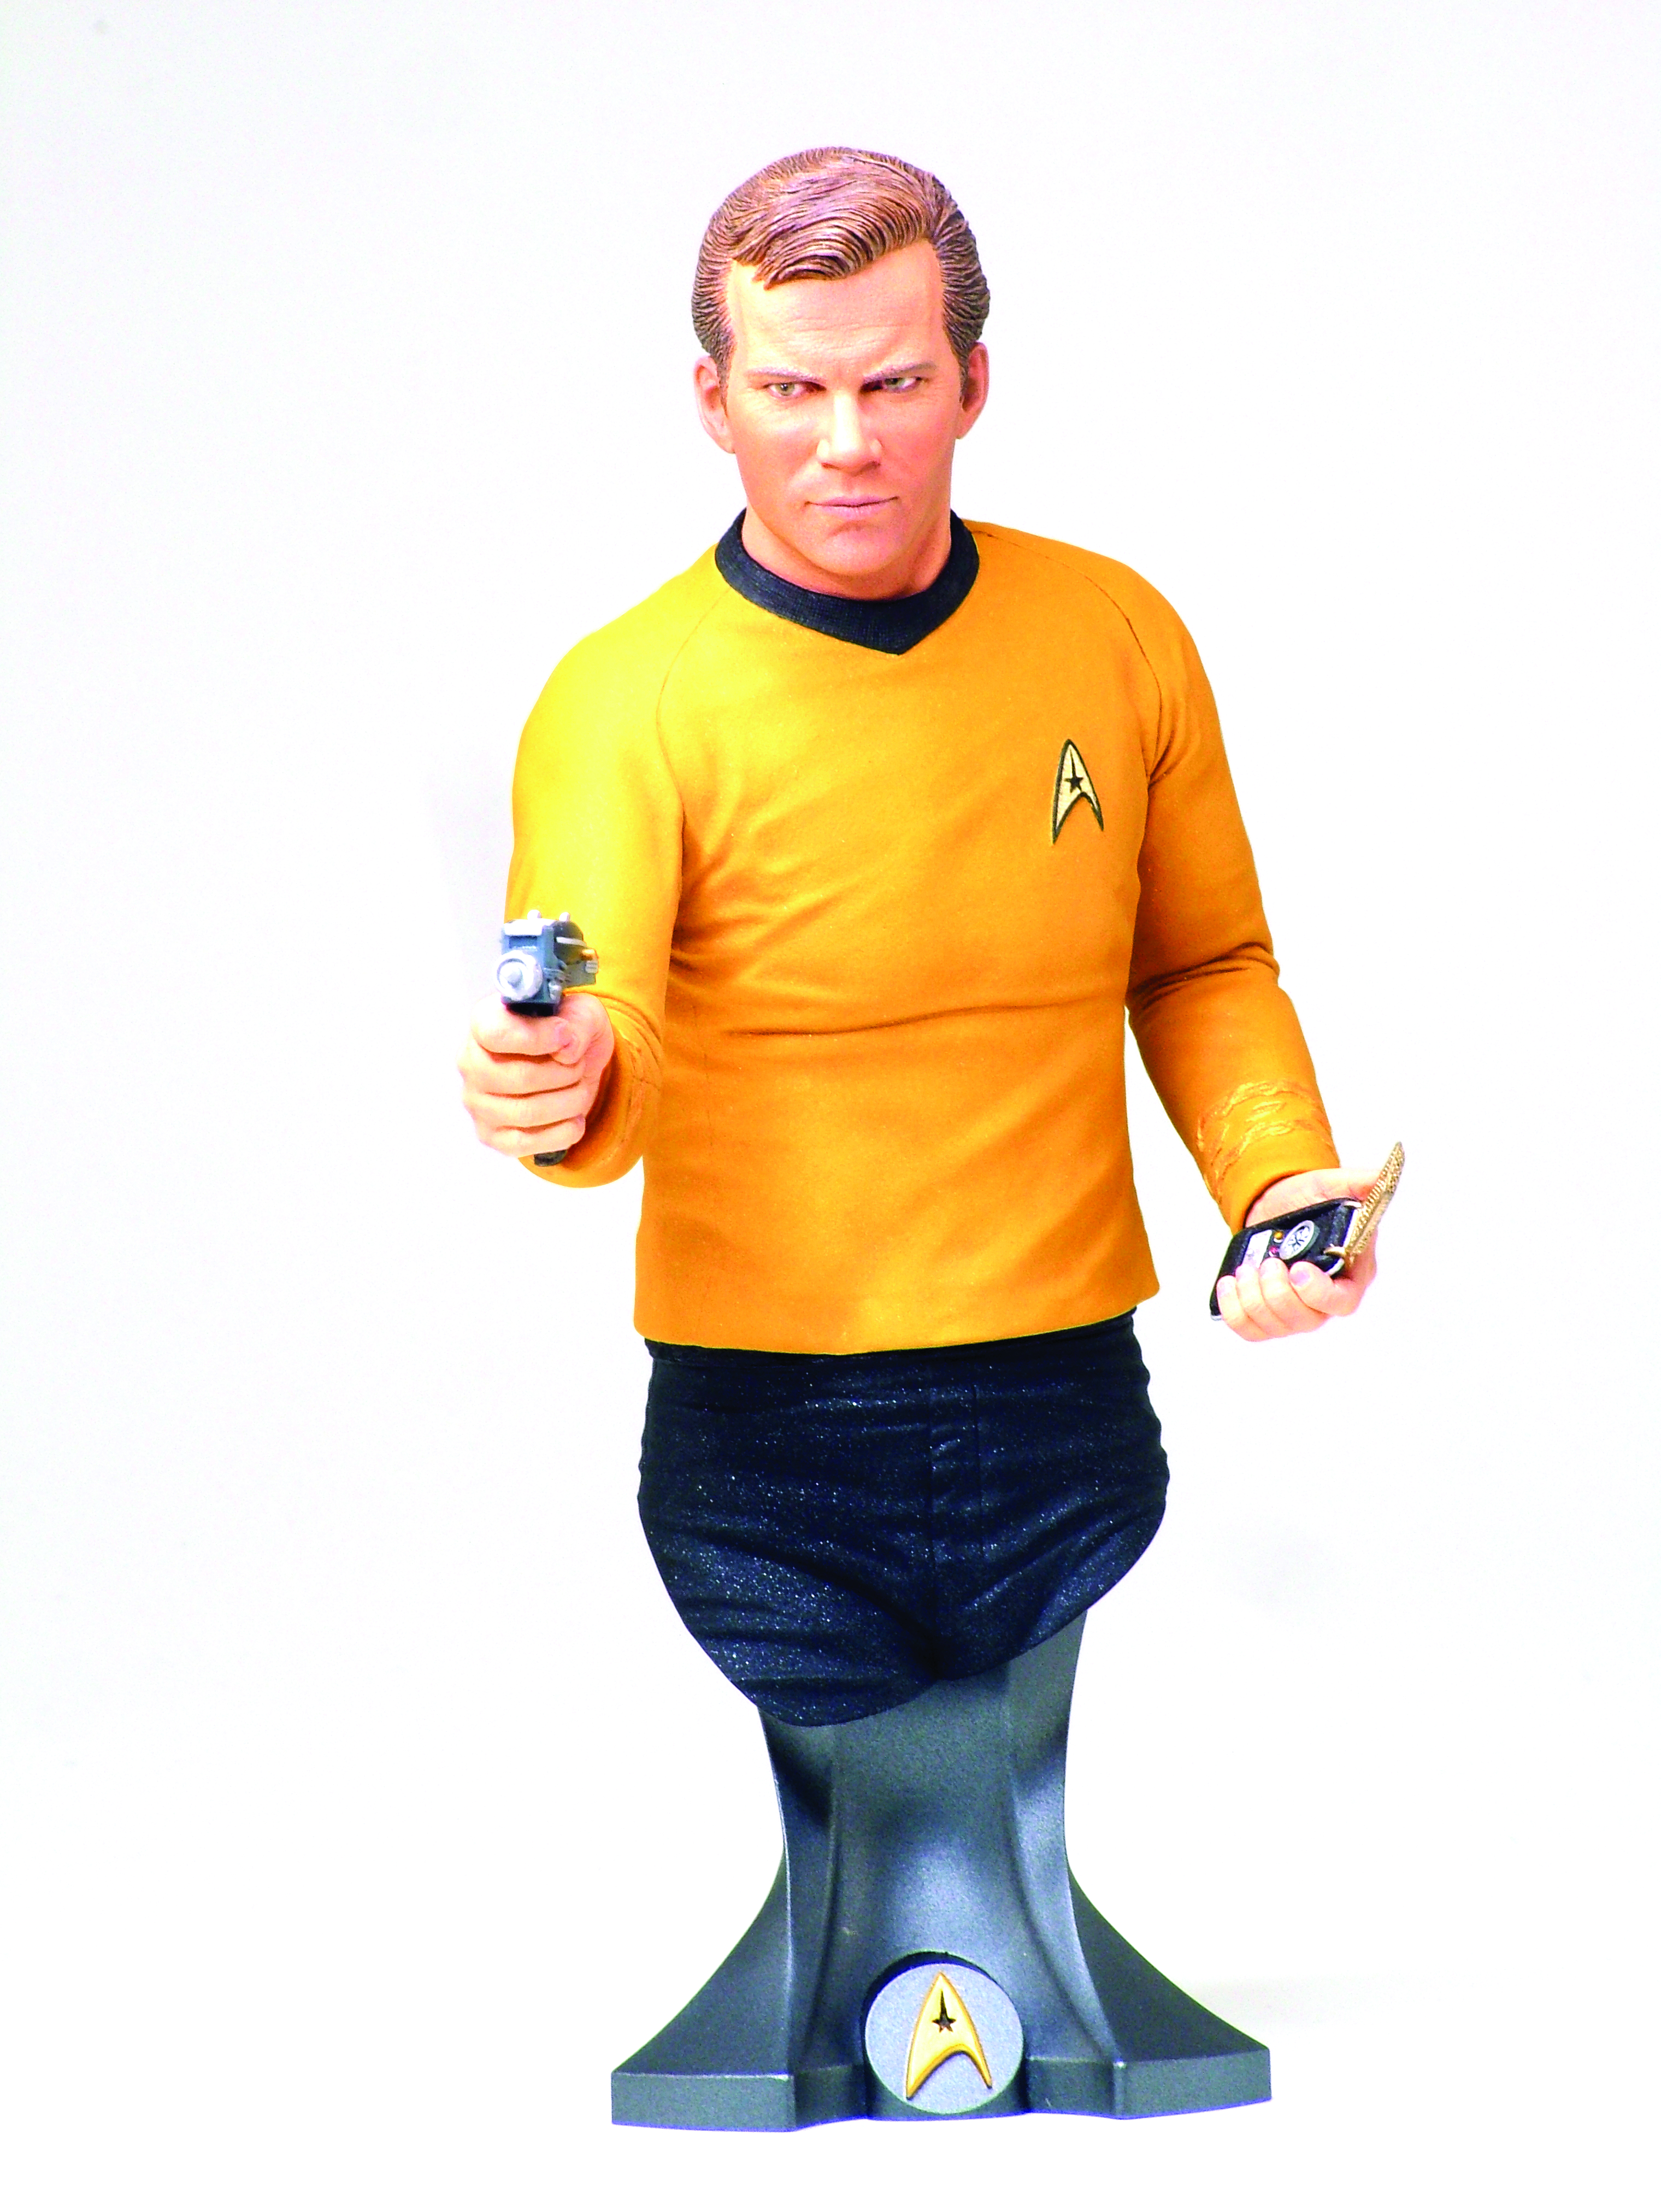 ST CAPTAIN JAMES T KIRK MAXI BUST